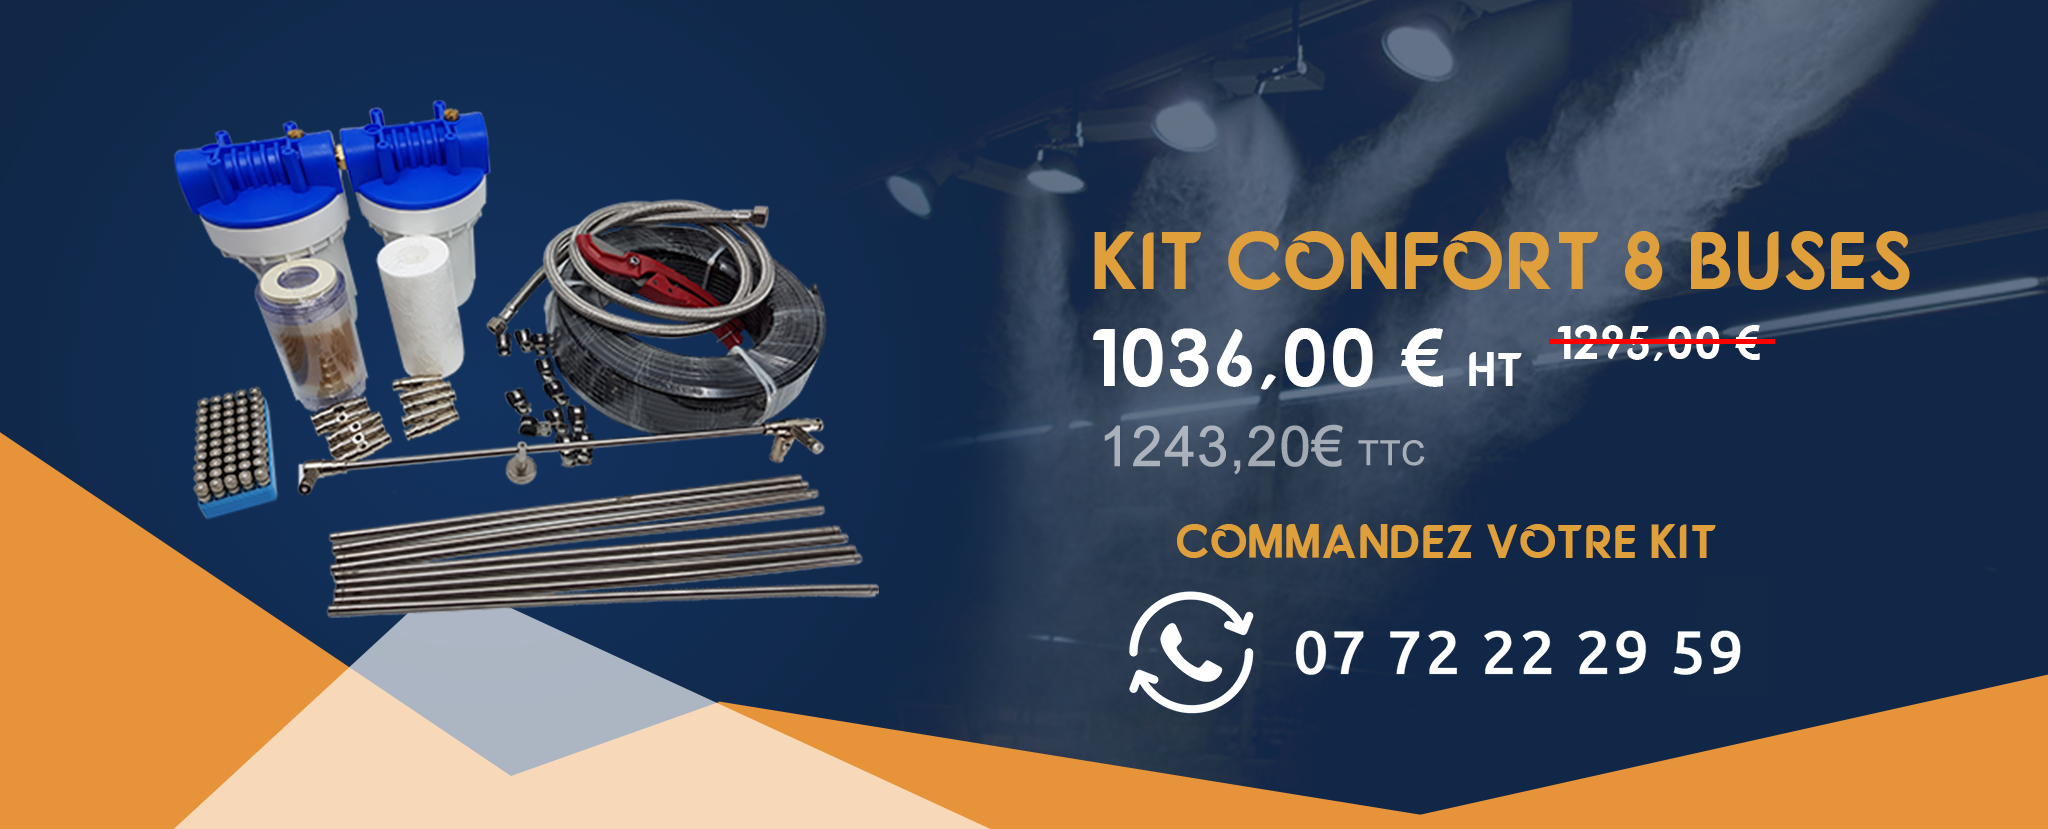 Kit-Confort-8-buses